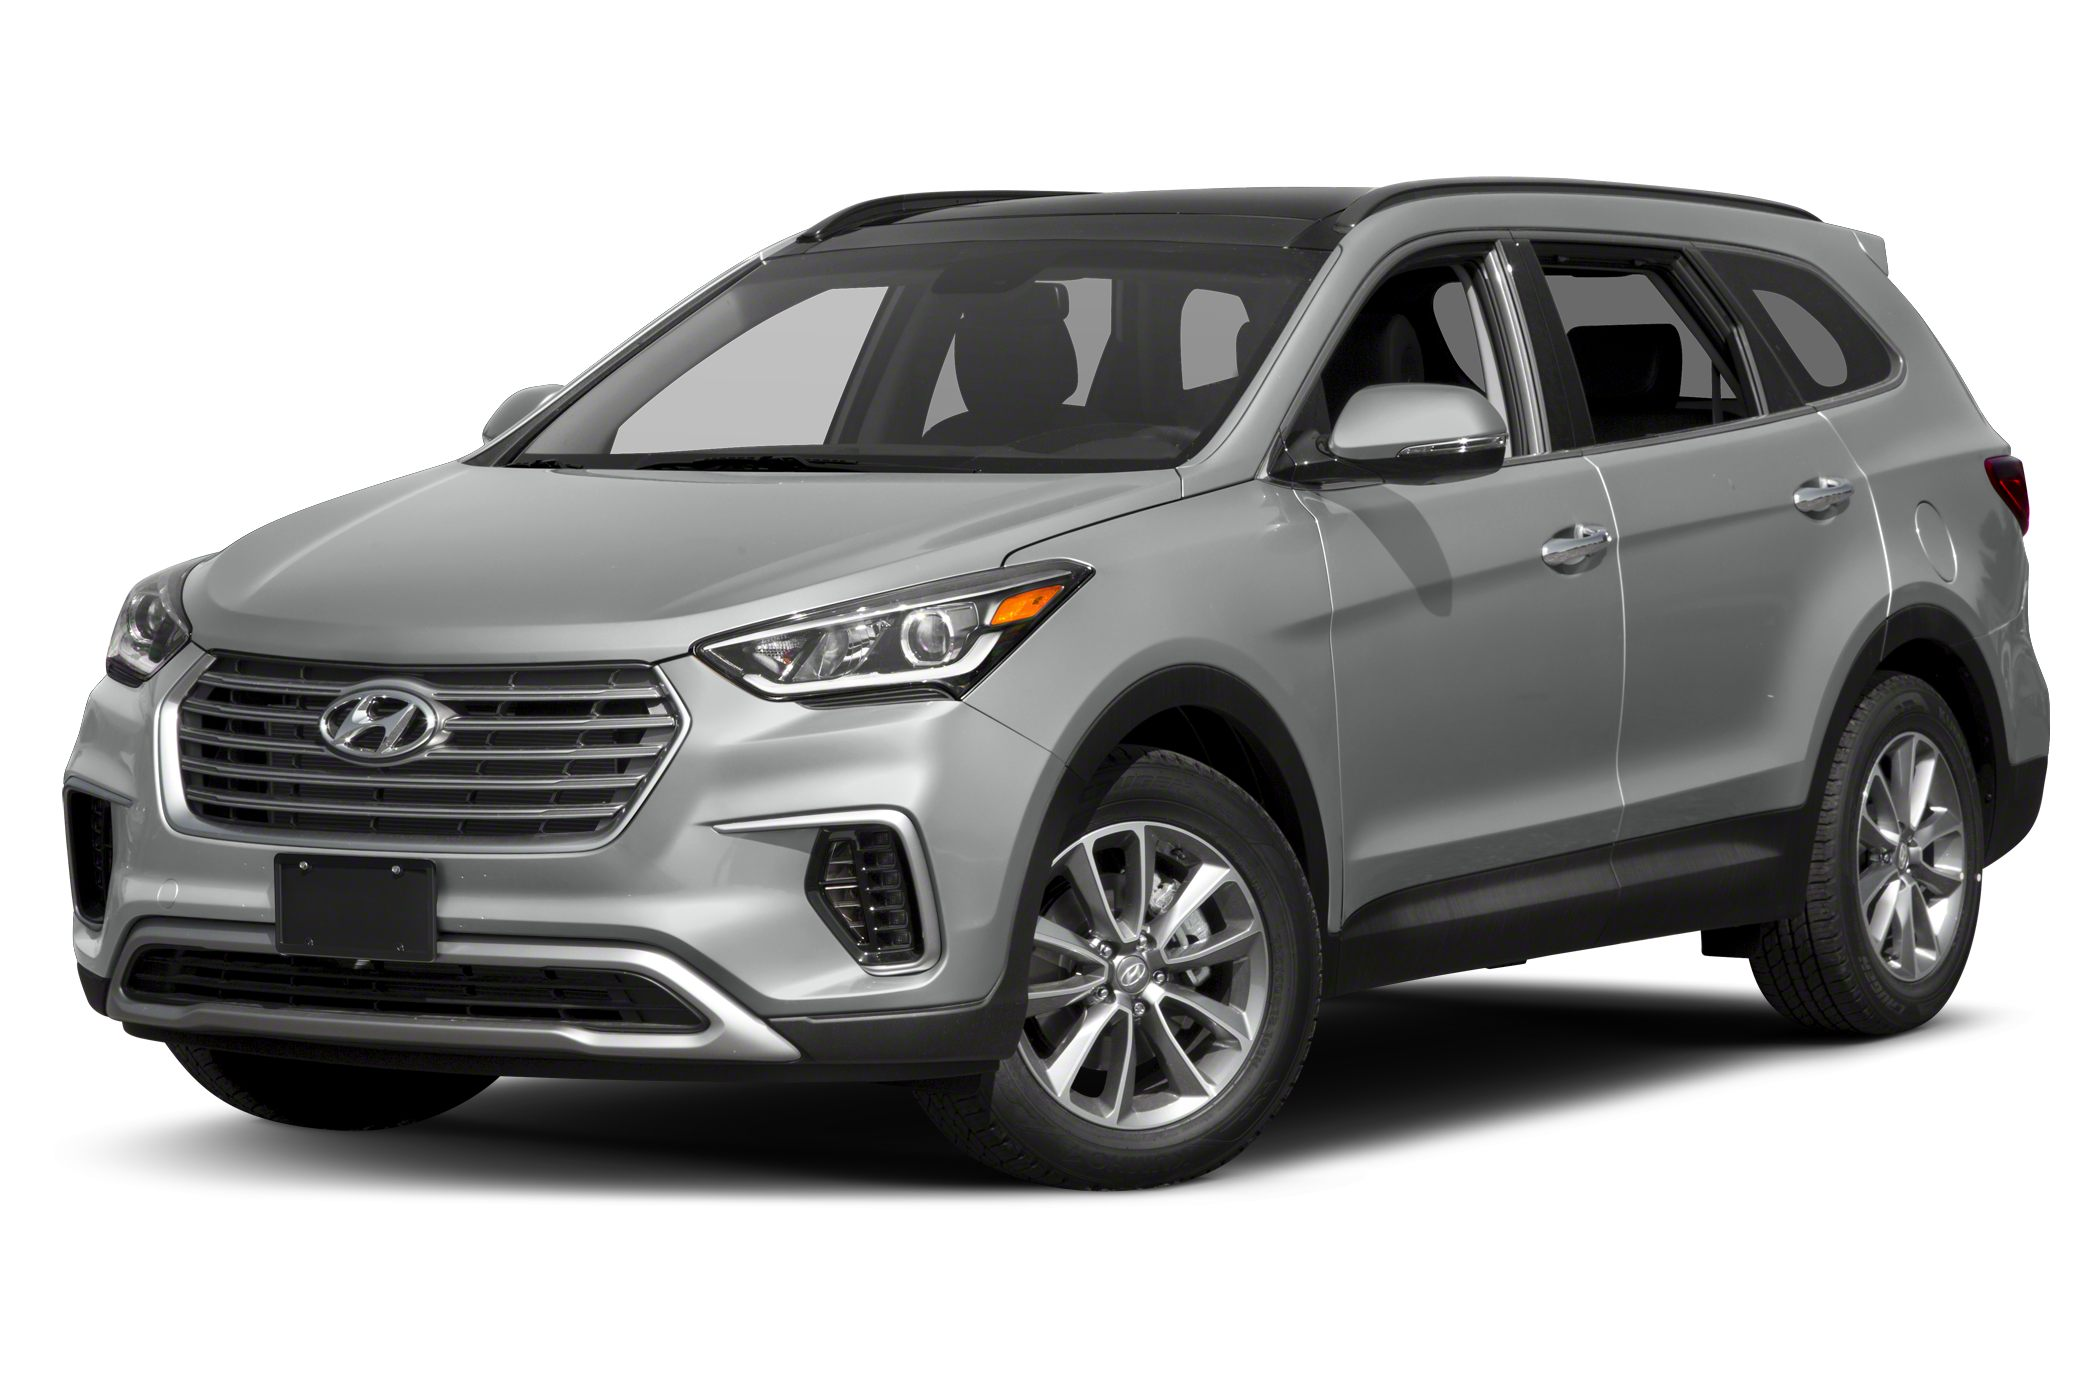 Hyundai Canada Incentives for the new 2018 Hyundai Santa Fe XL SUV in Milton, Toronto, and the GTA